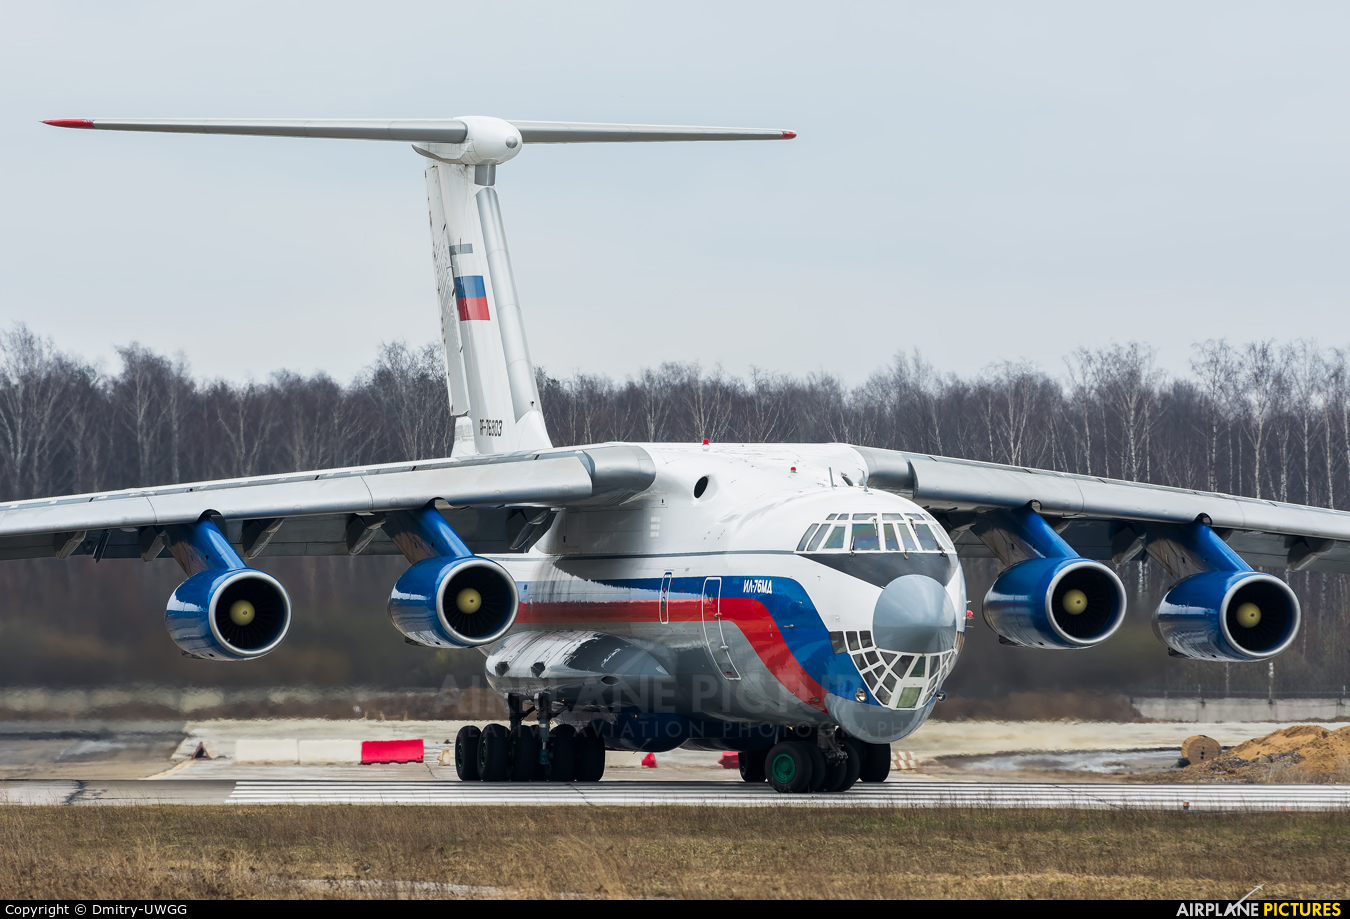 Russia - Ministry of Internal Affairs RF-76803 aircraft at Undisclosed Location